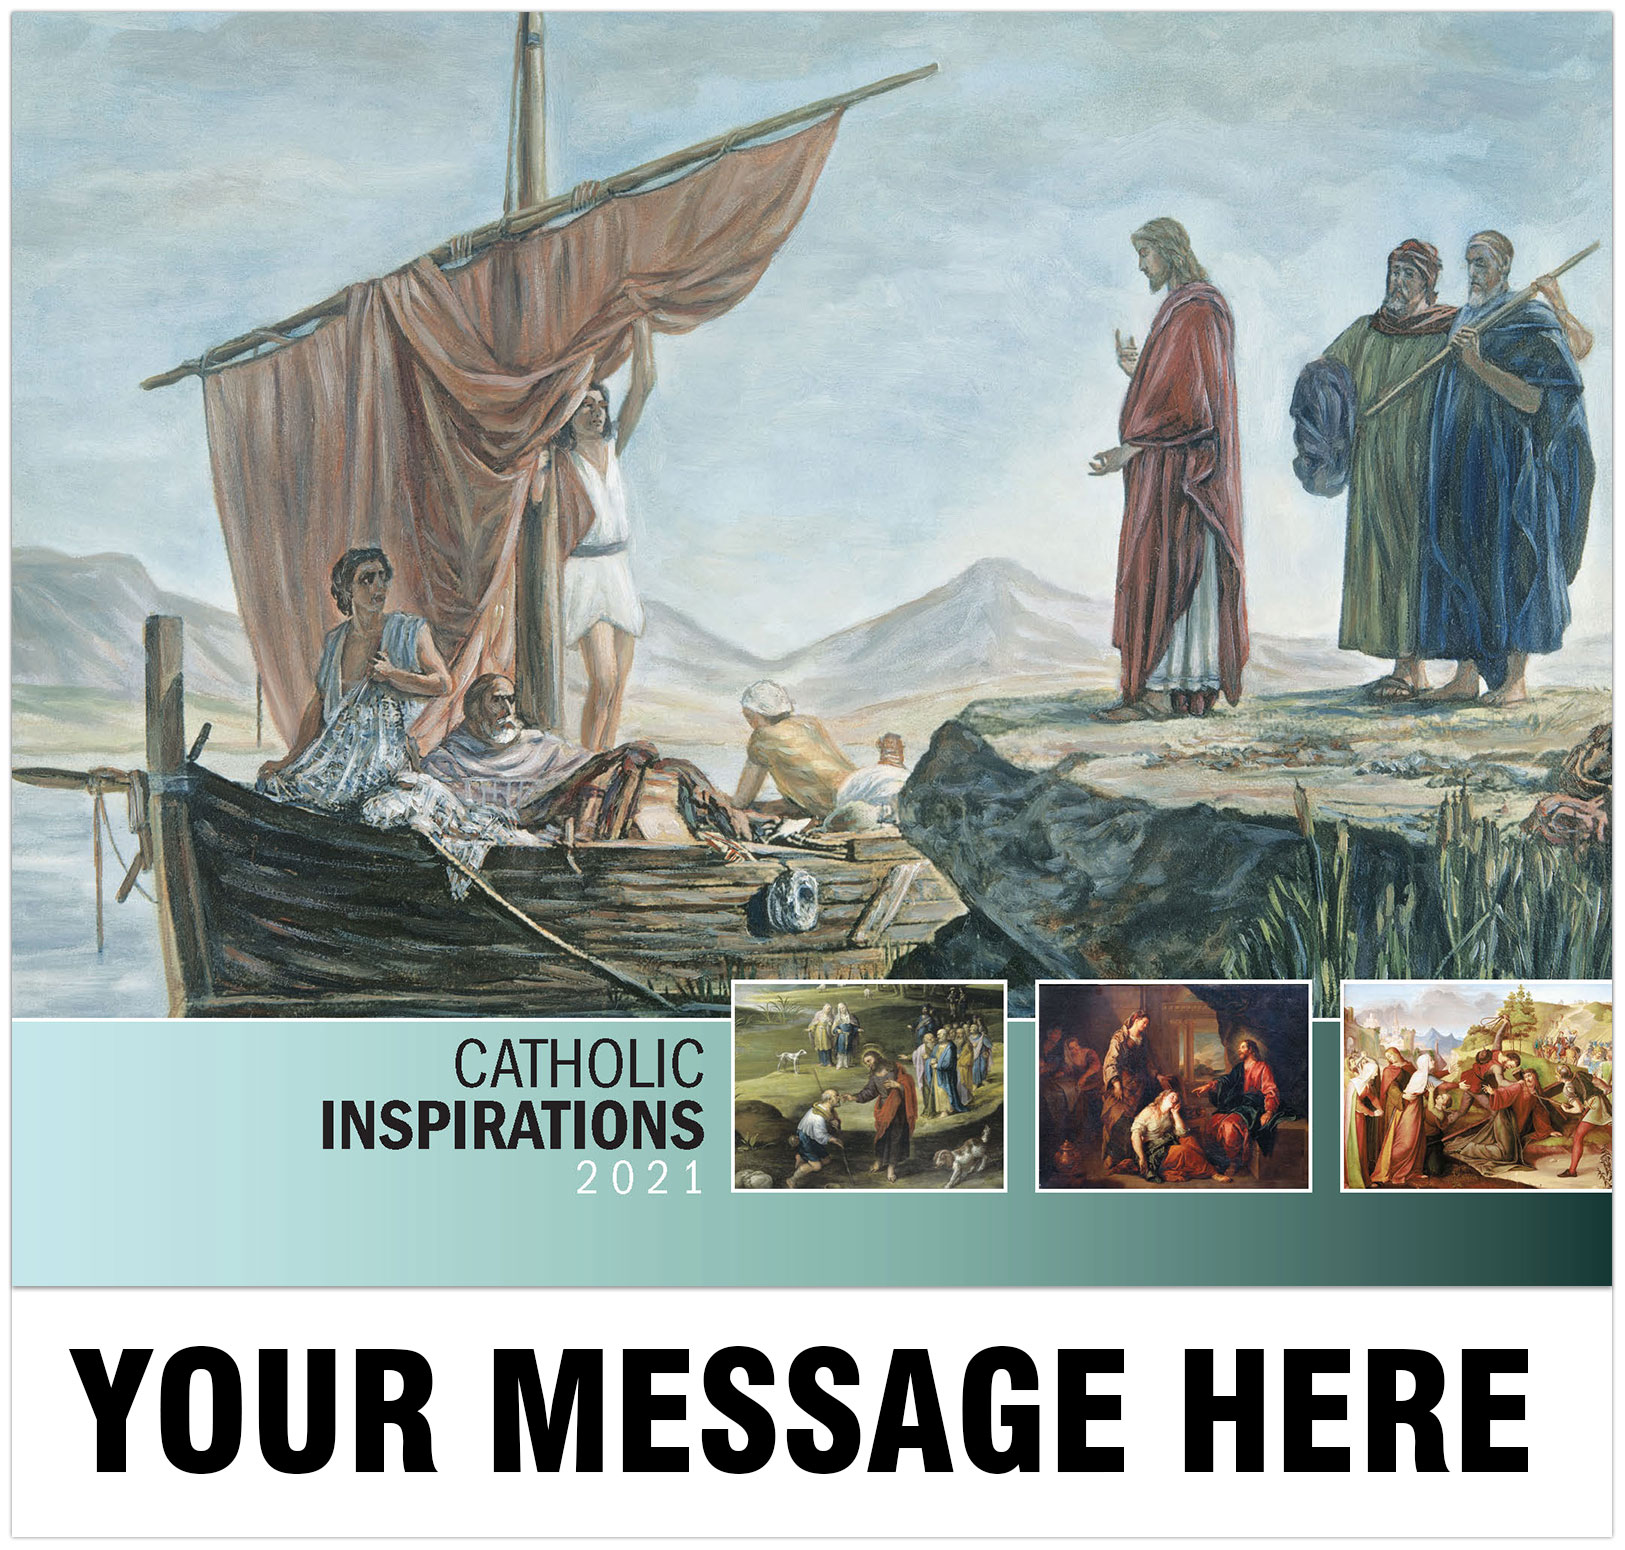 2021 Catholic Inspiration Promotional Calendar